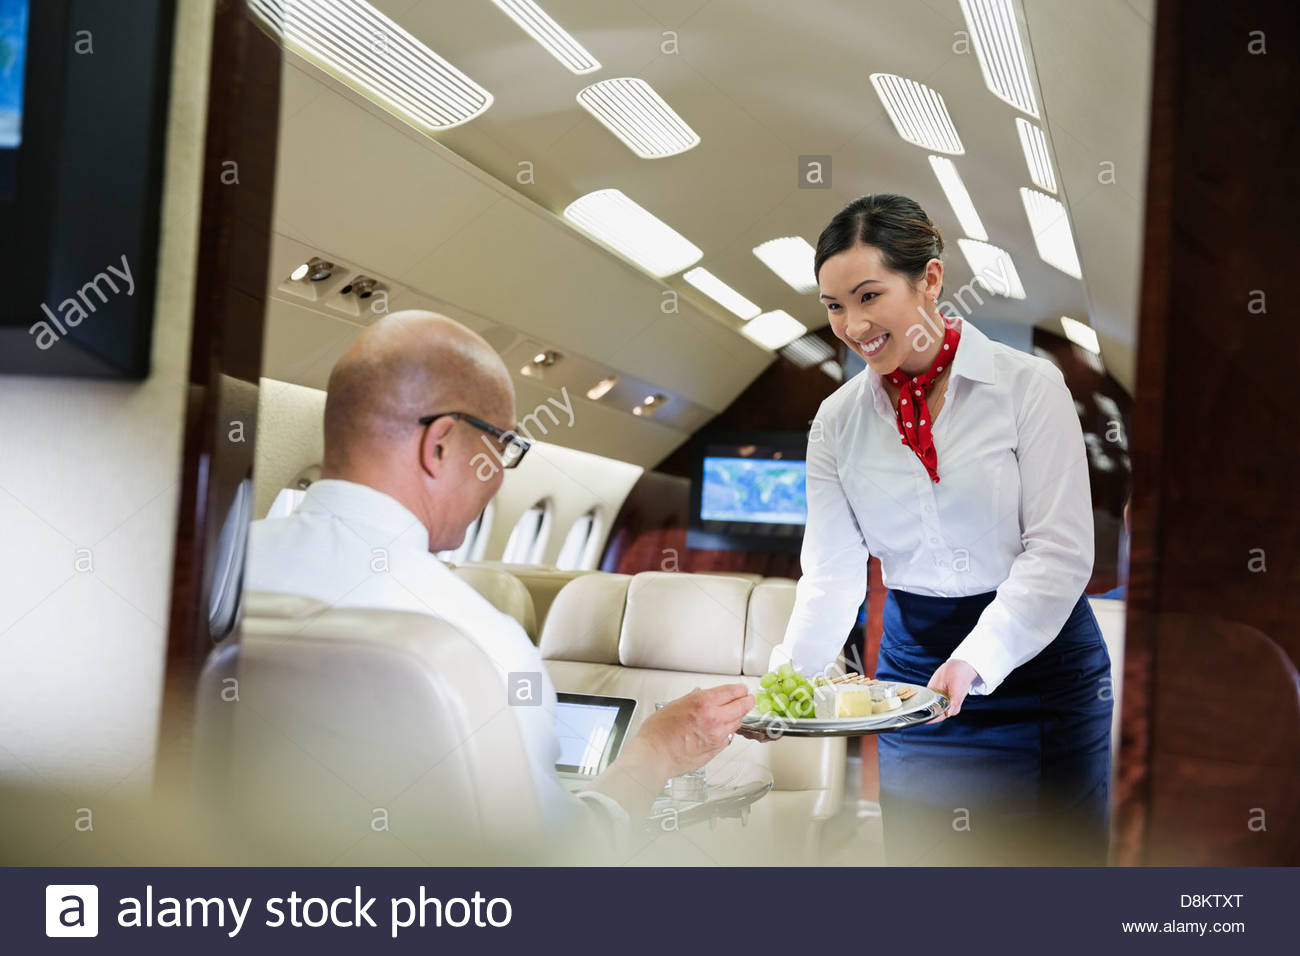 Flight attendant serving food to male passenger in airplane - Stock Image